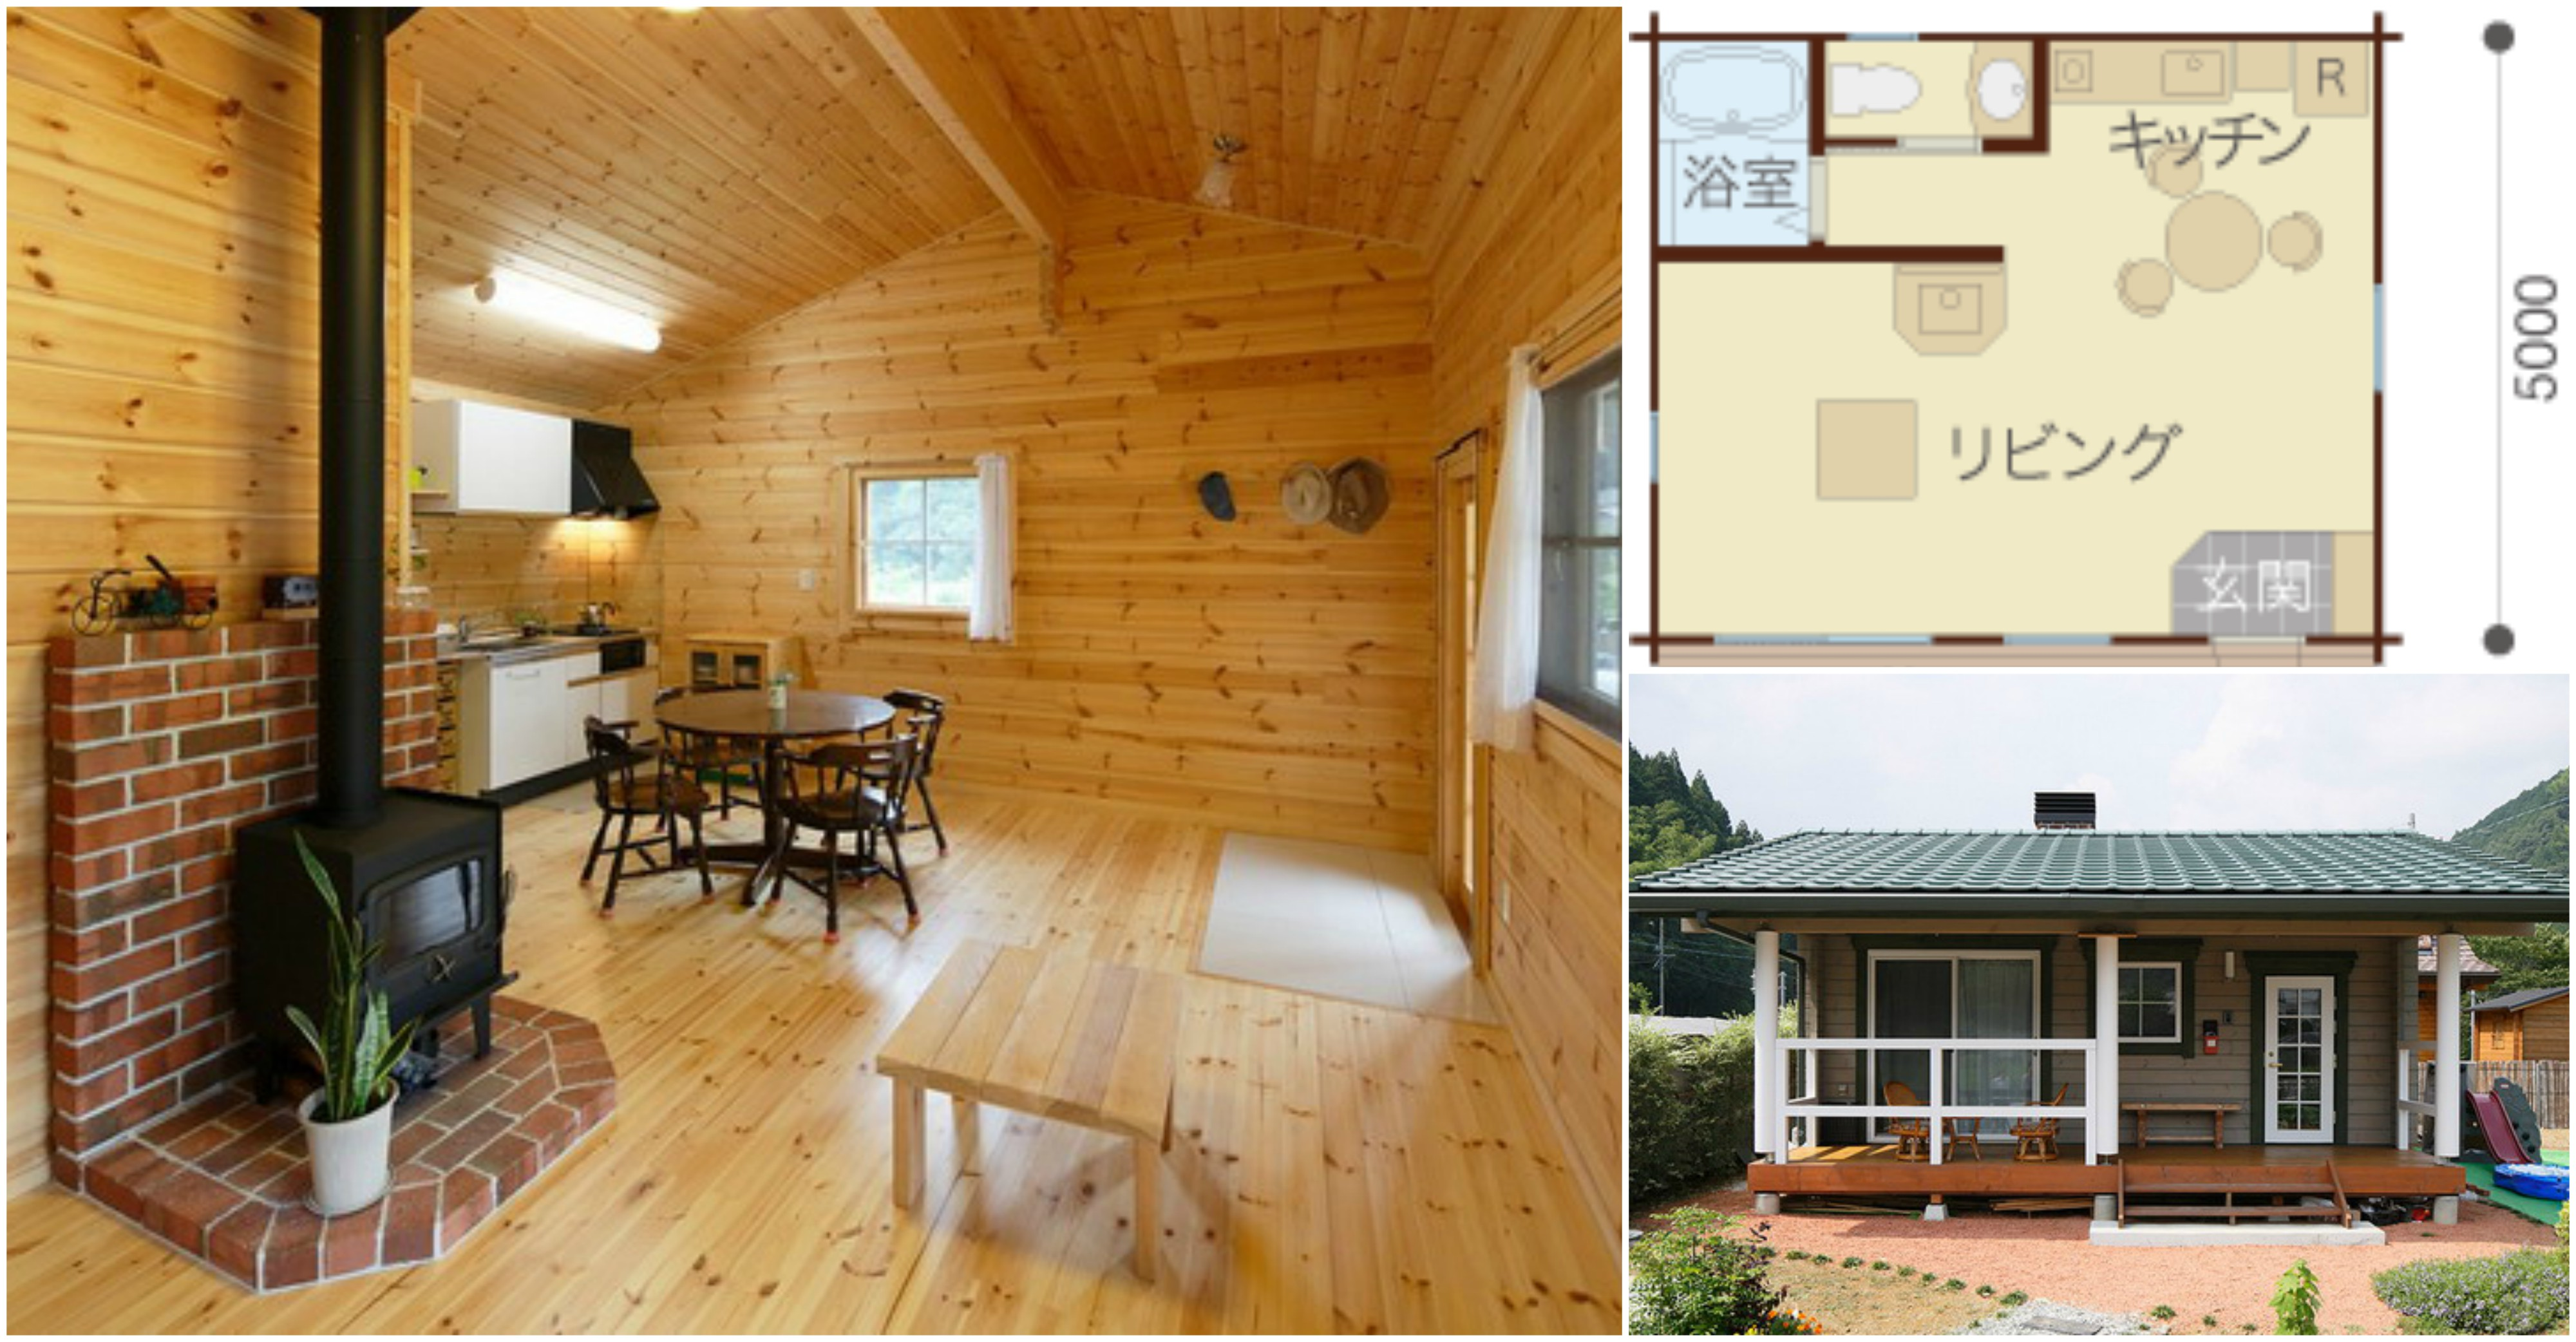 A Japanese Style Tiny House  Check Out that AllWood Interior